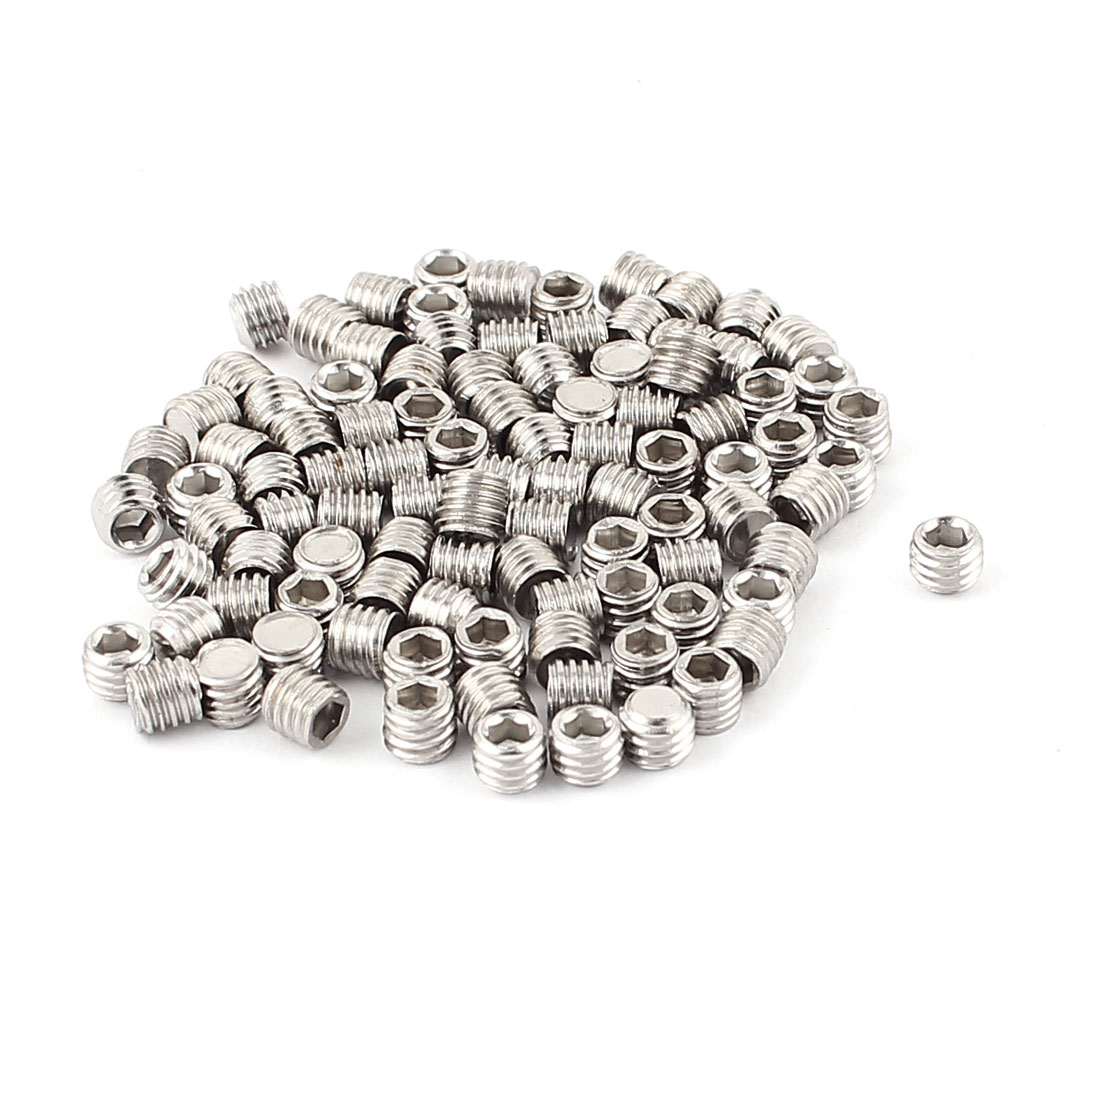 100pcs Stainless Steel M5 x 4mm Hexagon Socket Head Set Grub Screws